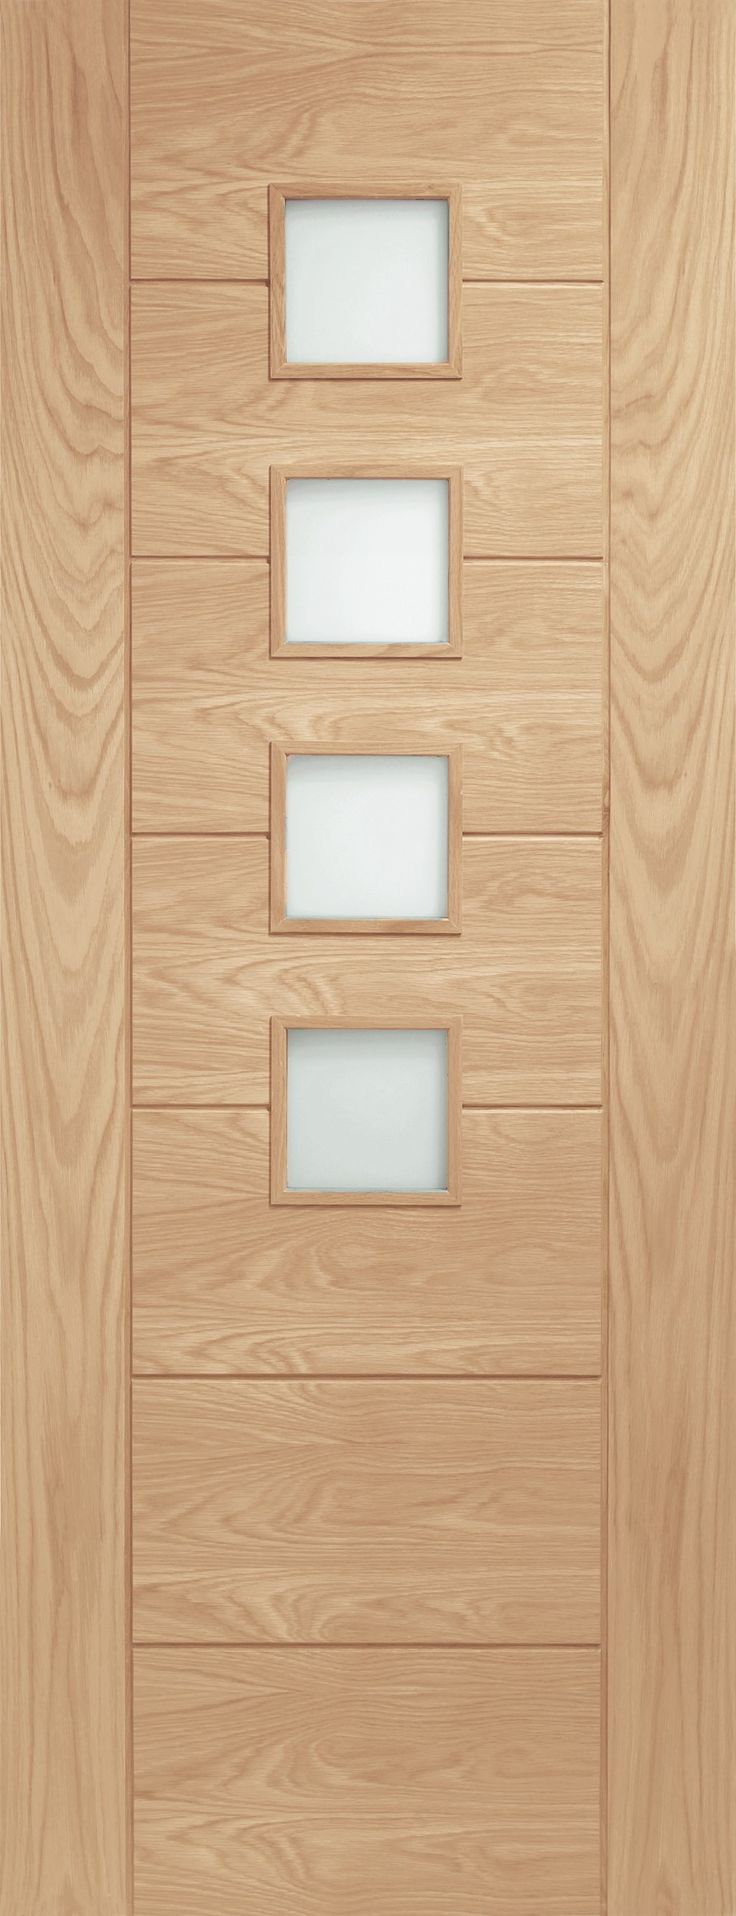 XL - GOPAL33 Internal Oak Palermo with Obscure Glass - Glazed Doors - Internal Doors